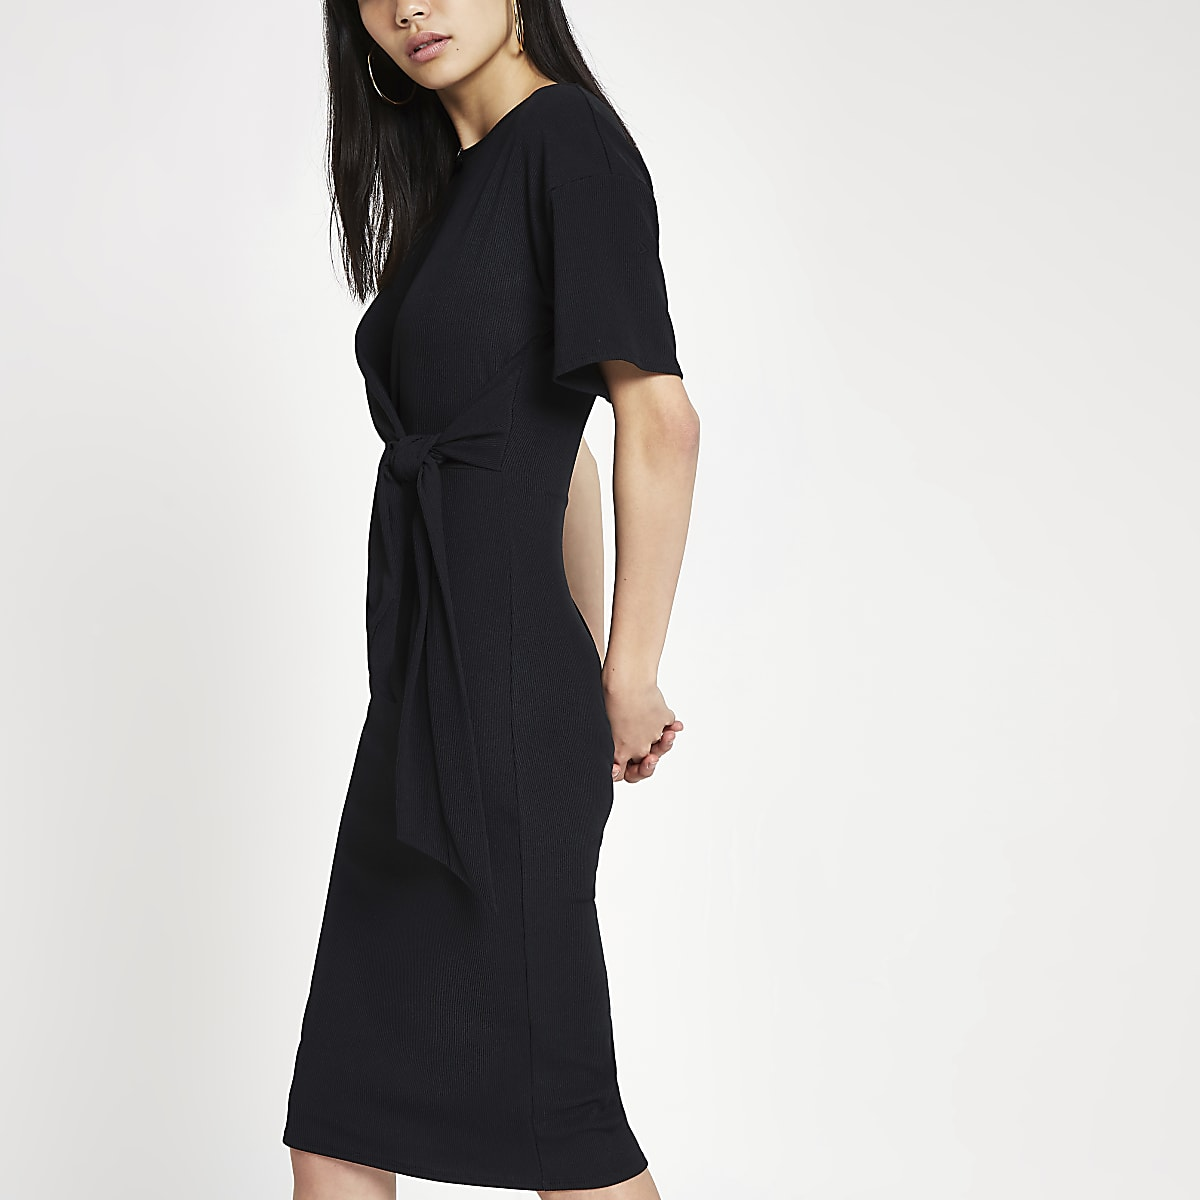 Black short sleeve tie front bodycon dress